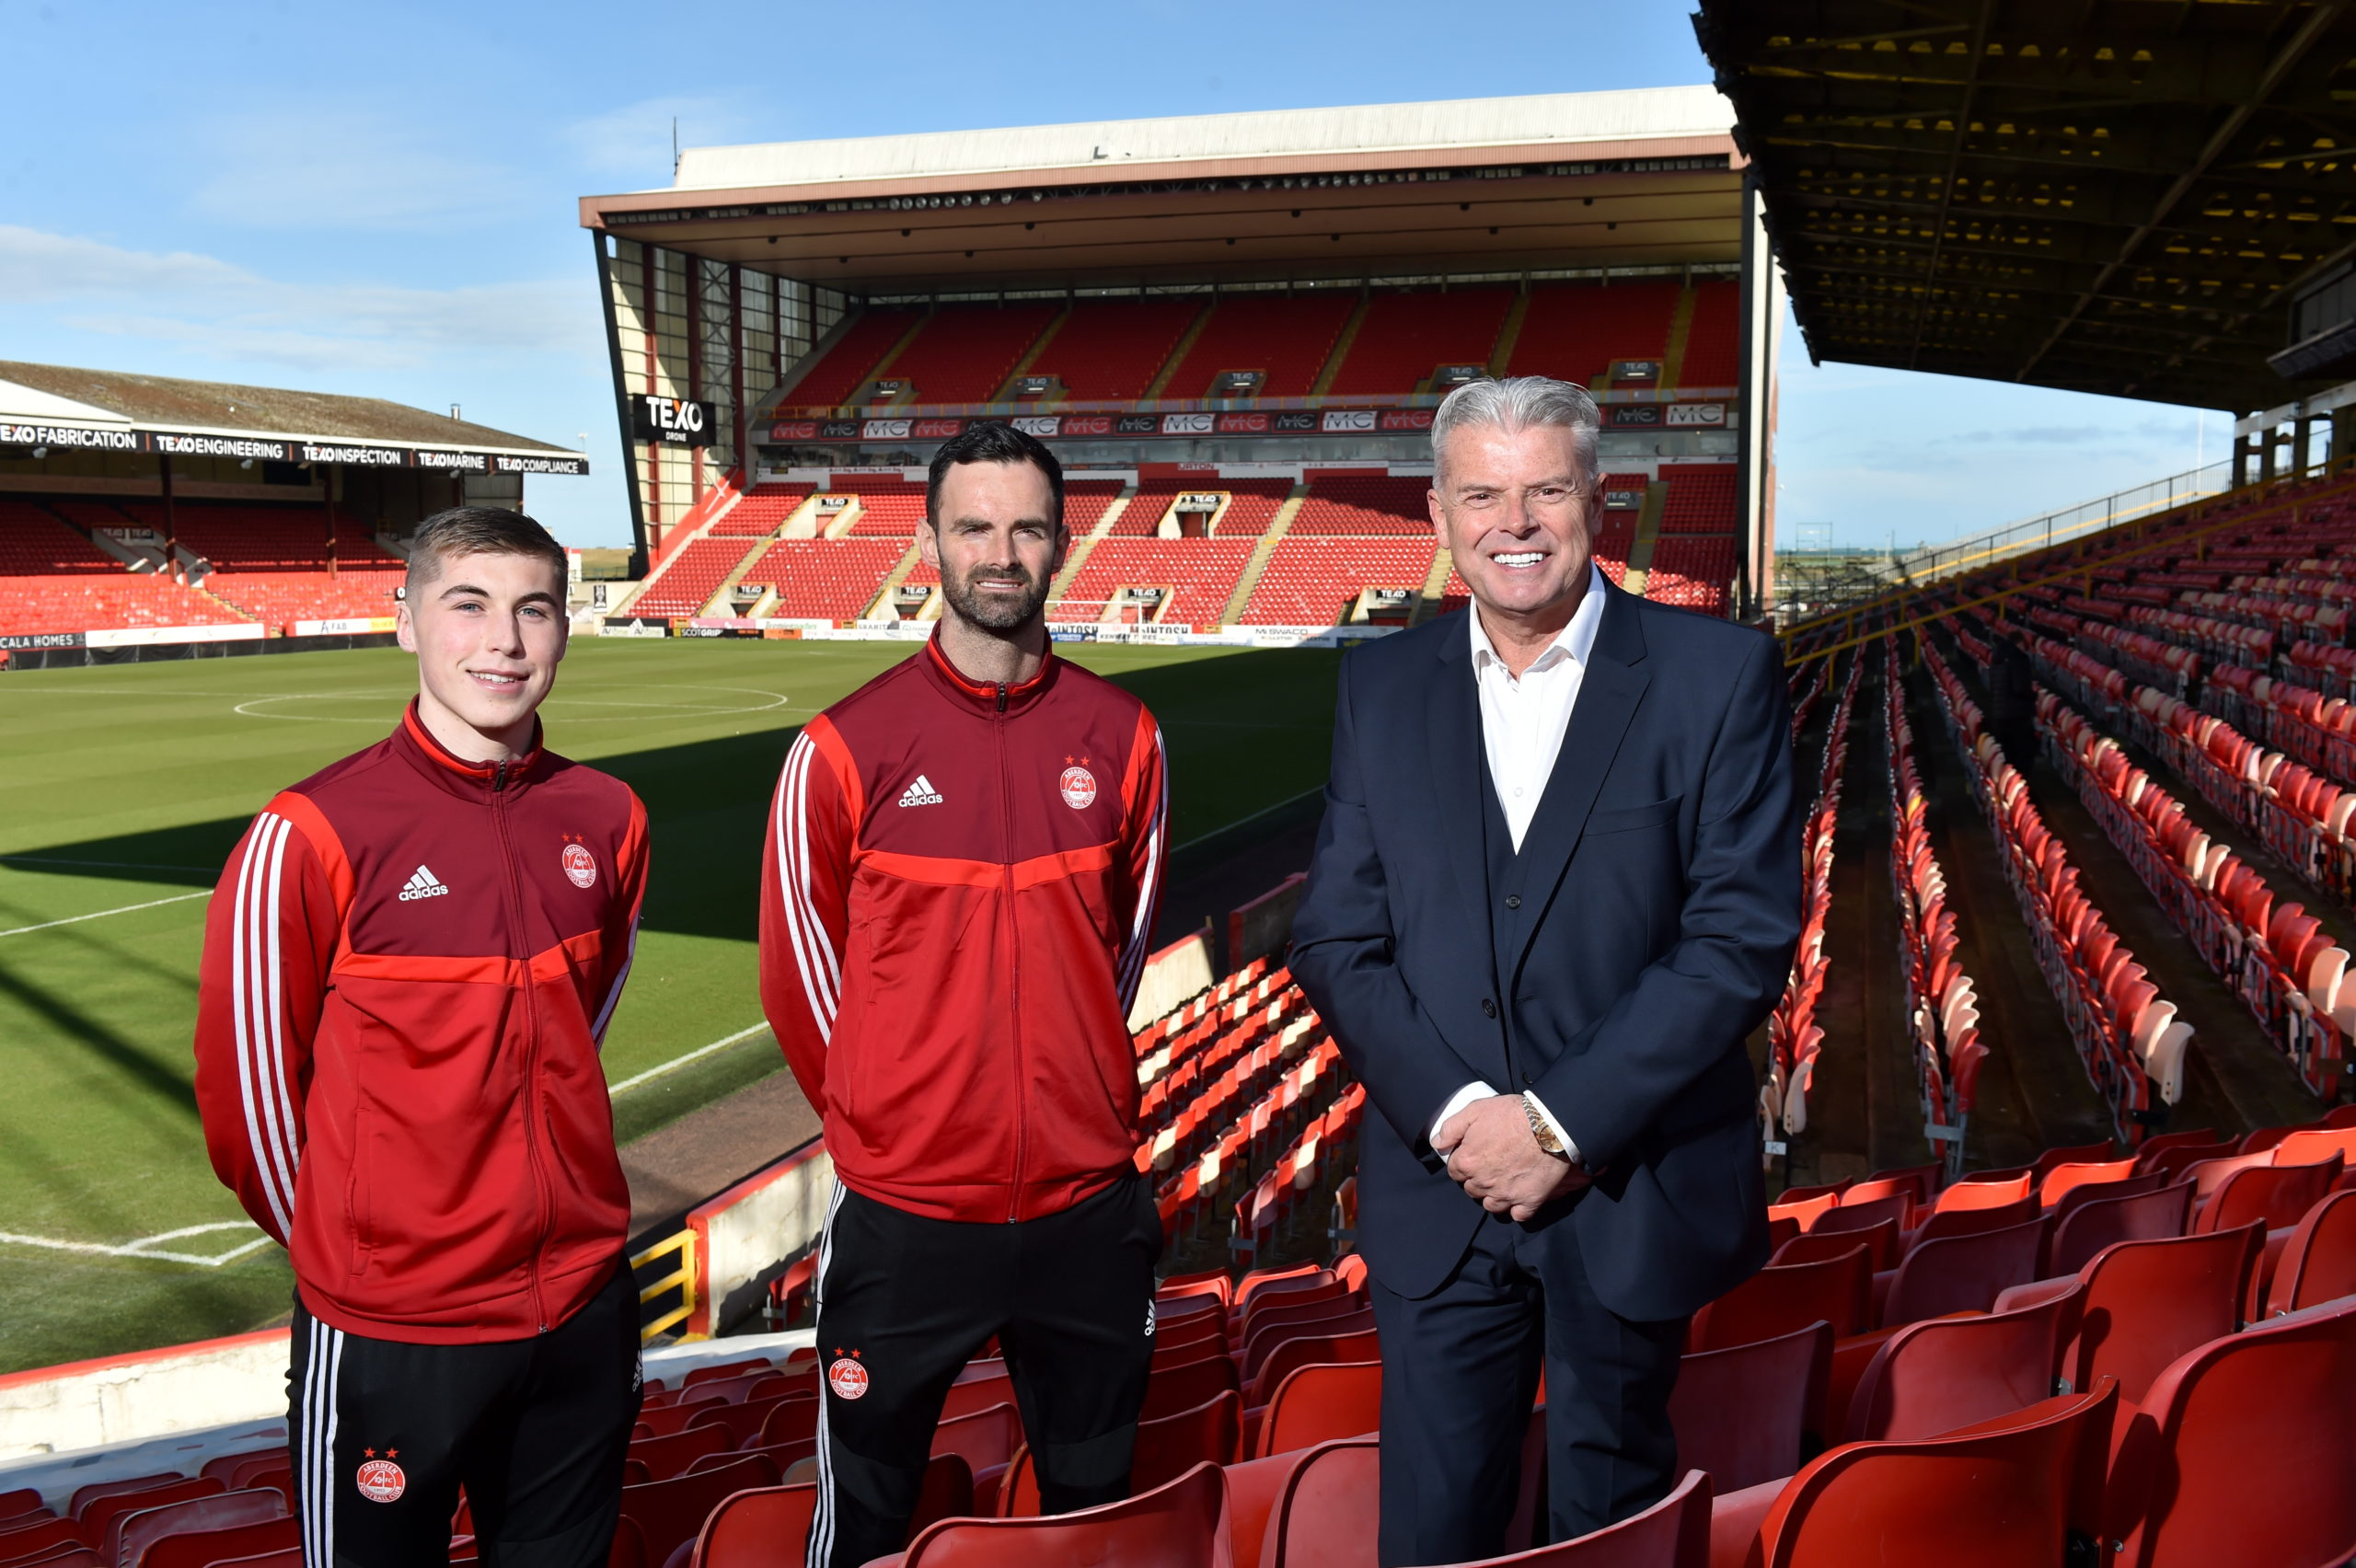 Aberdeen chairman Dave Cormack, club captain Joe Lewis and midfielder Dean Campbell at the launch of the club's new season-ticket initiative. Picture by Kenny Elrick